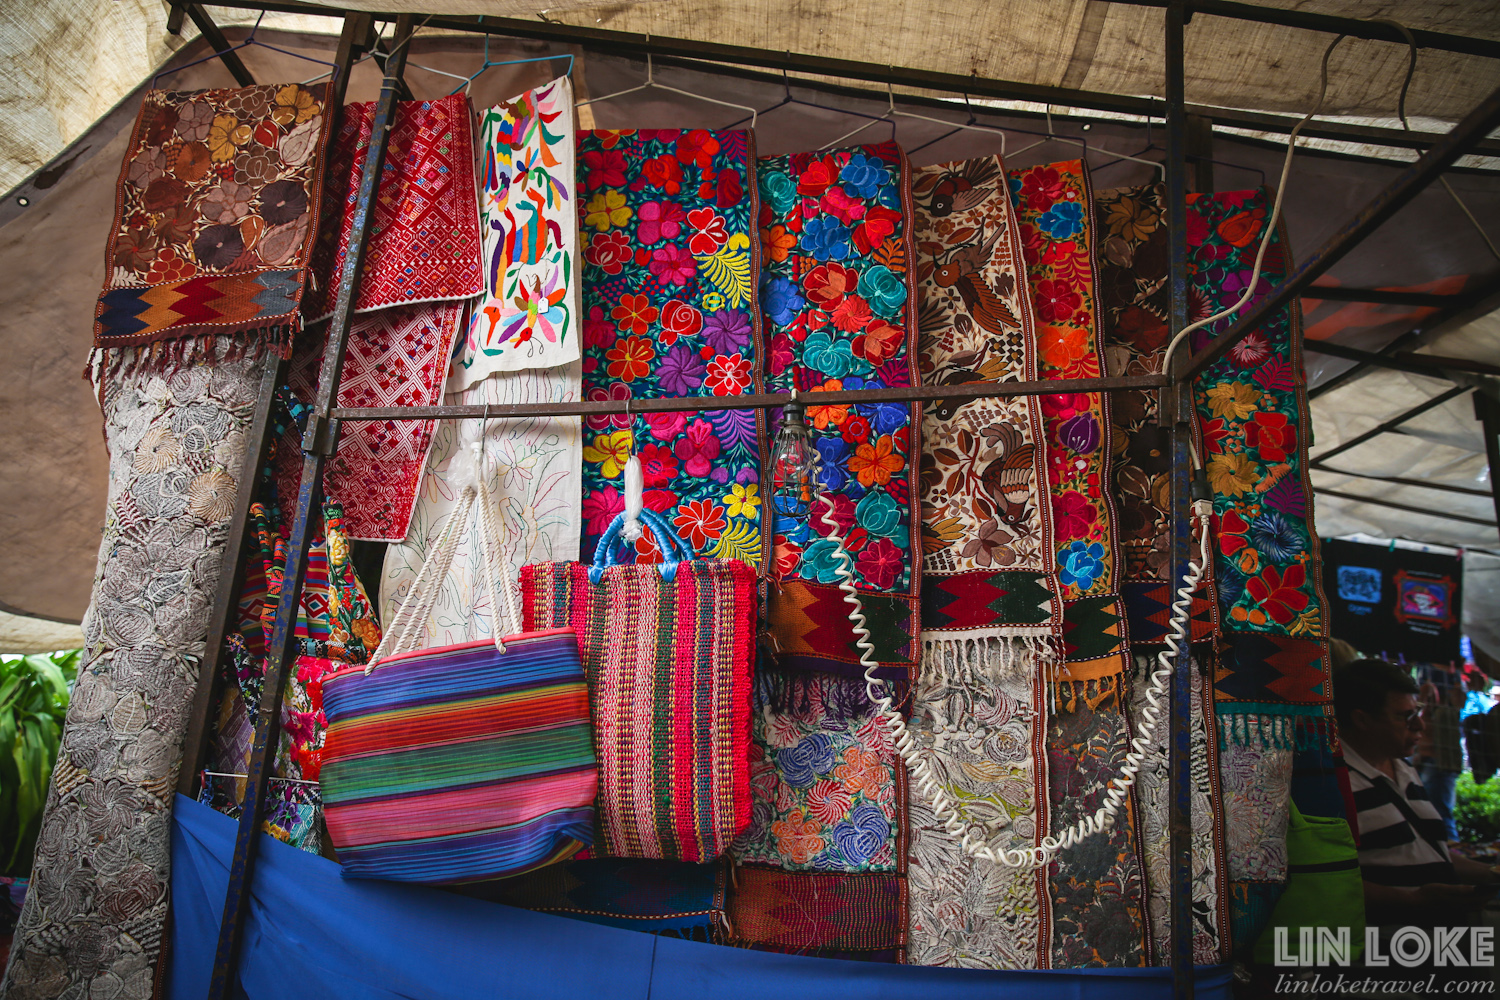 Mexican textiles and bags